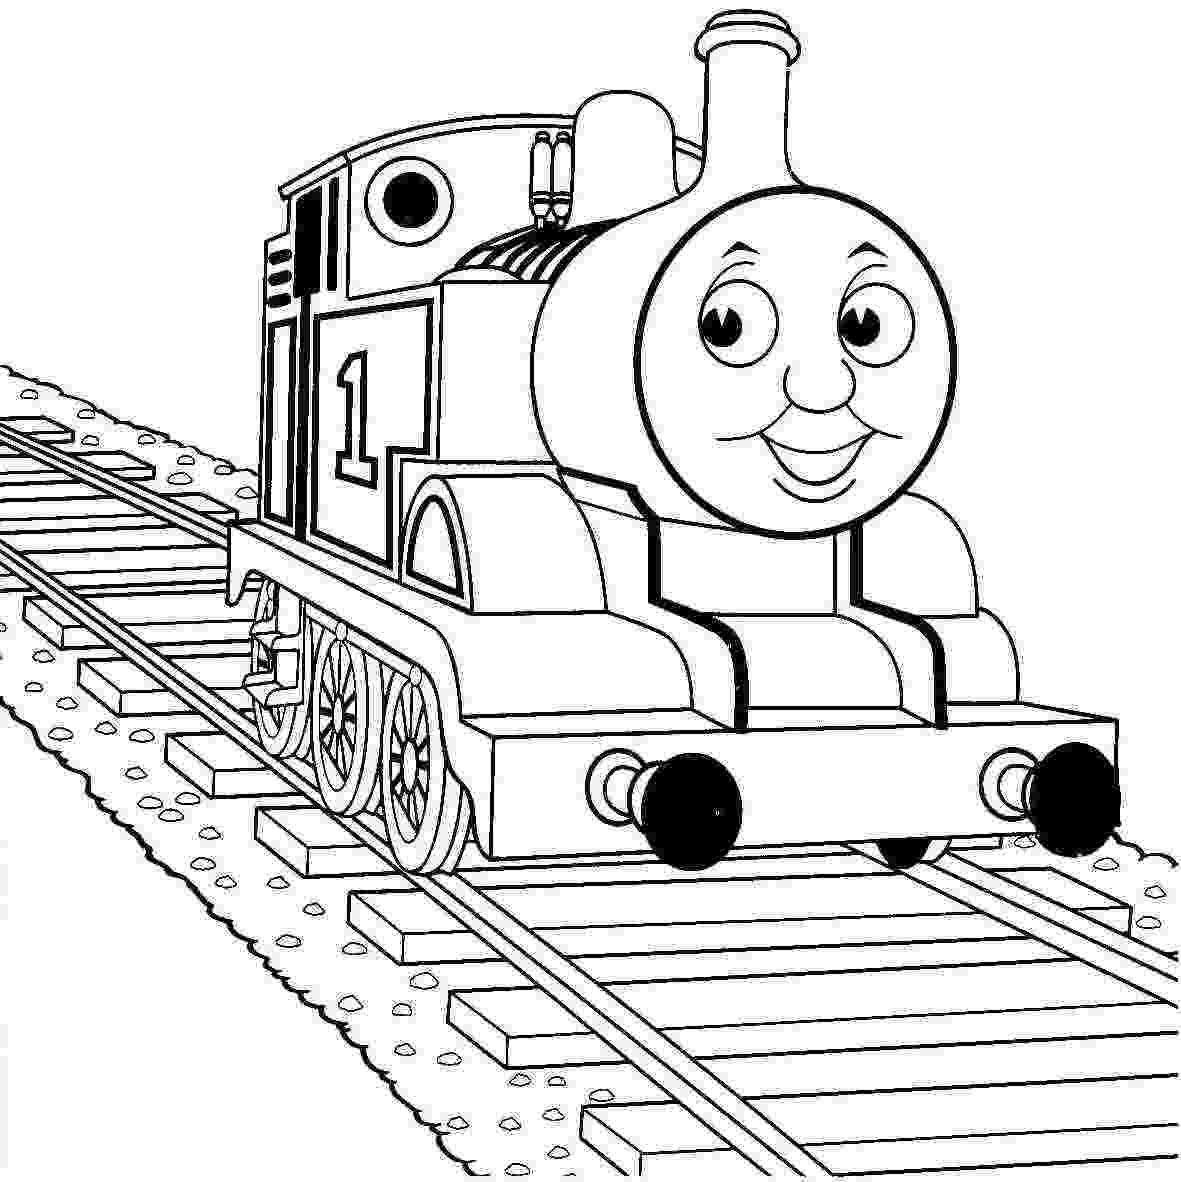 percy coloring pages thomas train drawing at getdrawings free download percy pages coloring